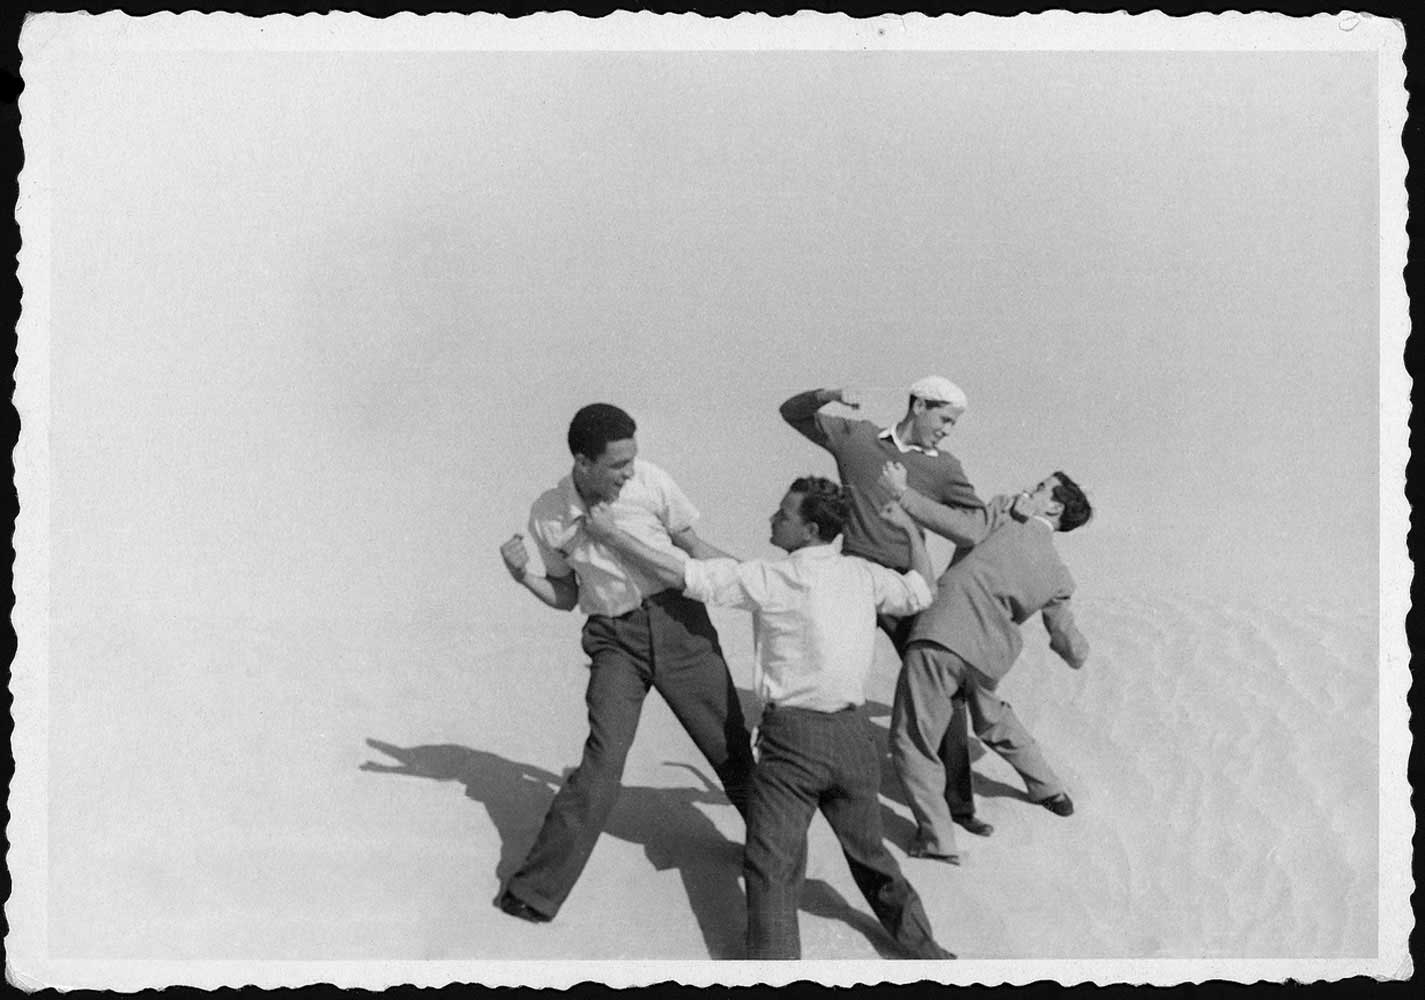 In the desert south of Tripoli, Mohamed Nga, far left, play-fights with friends